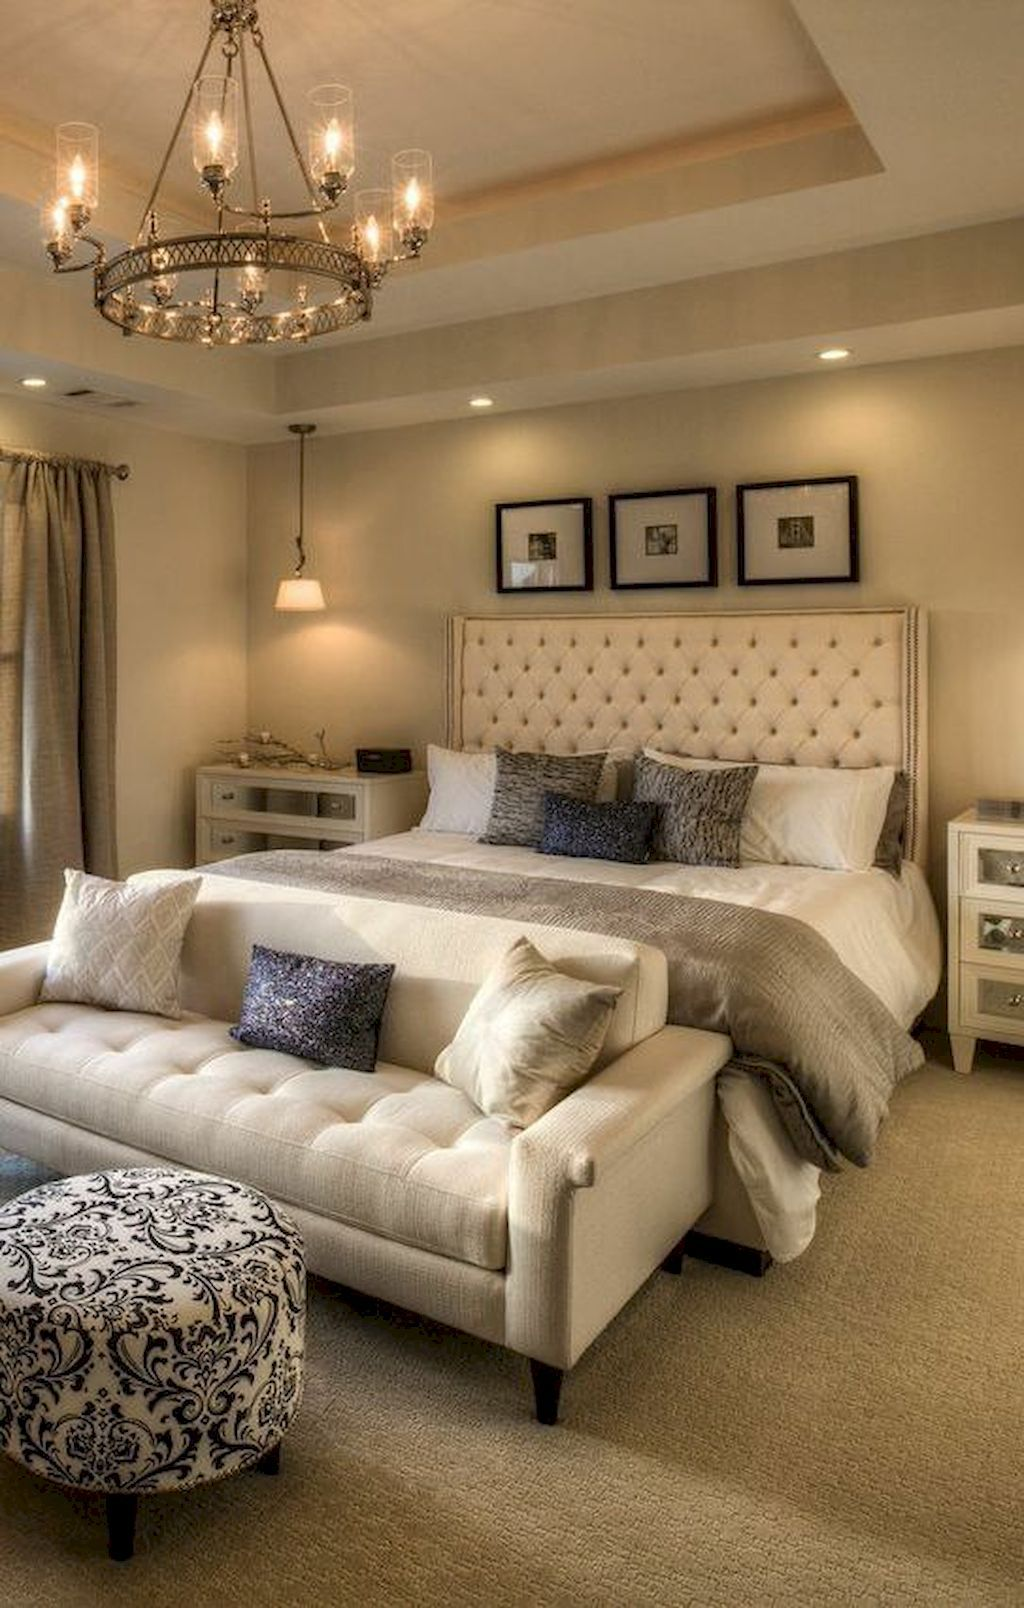 65 incredible luxurious master bedroom designs ideas master 65 incredible luxurious master bedroom designs ideas